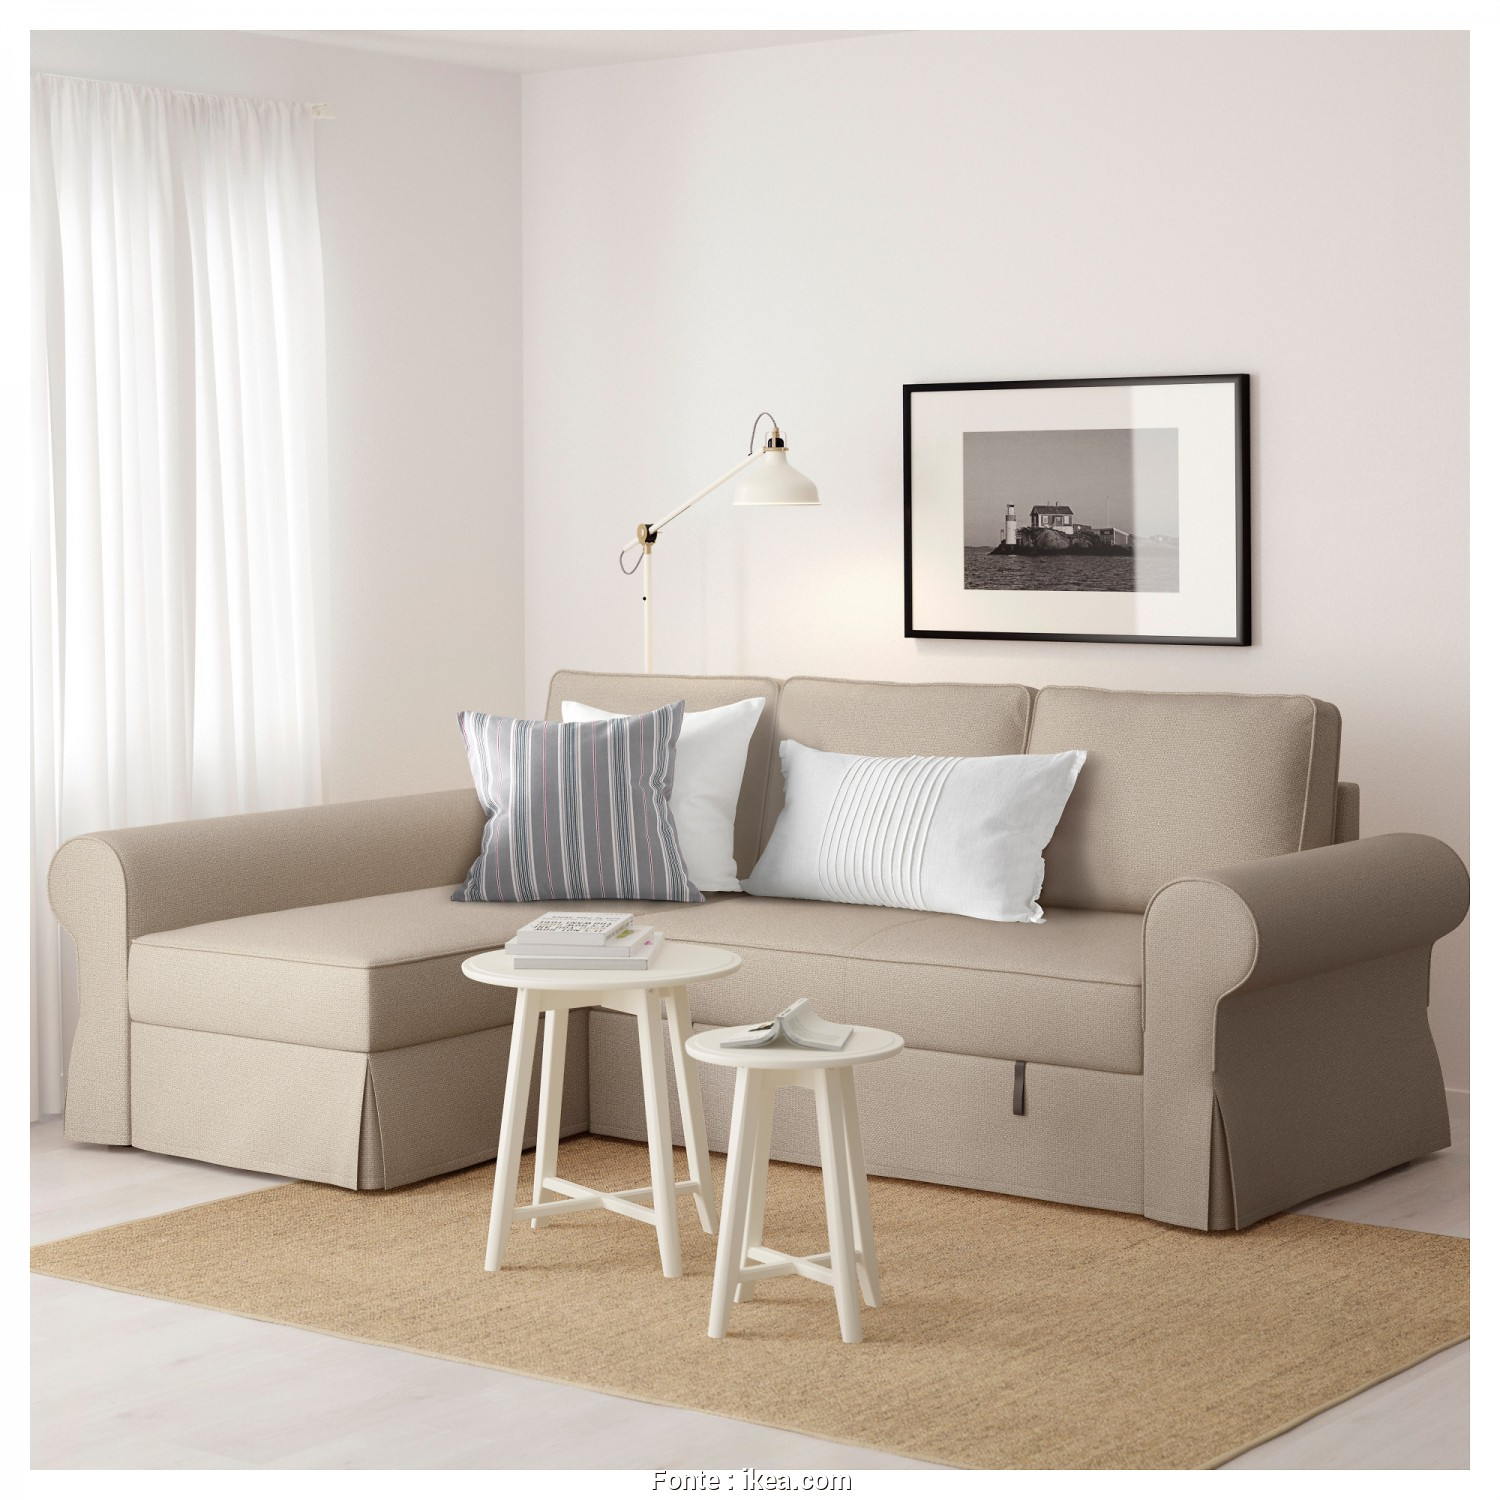 Ikea Backabro Bed, Ideale BACKABRO Sofa, With Chaise Longue Hylte Beige